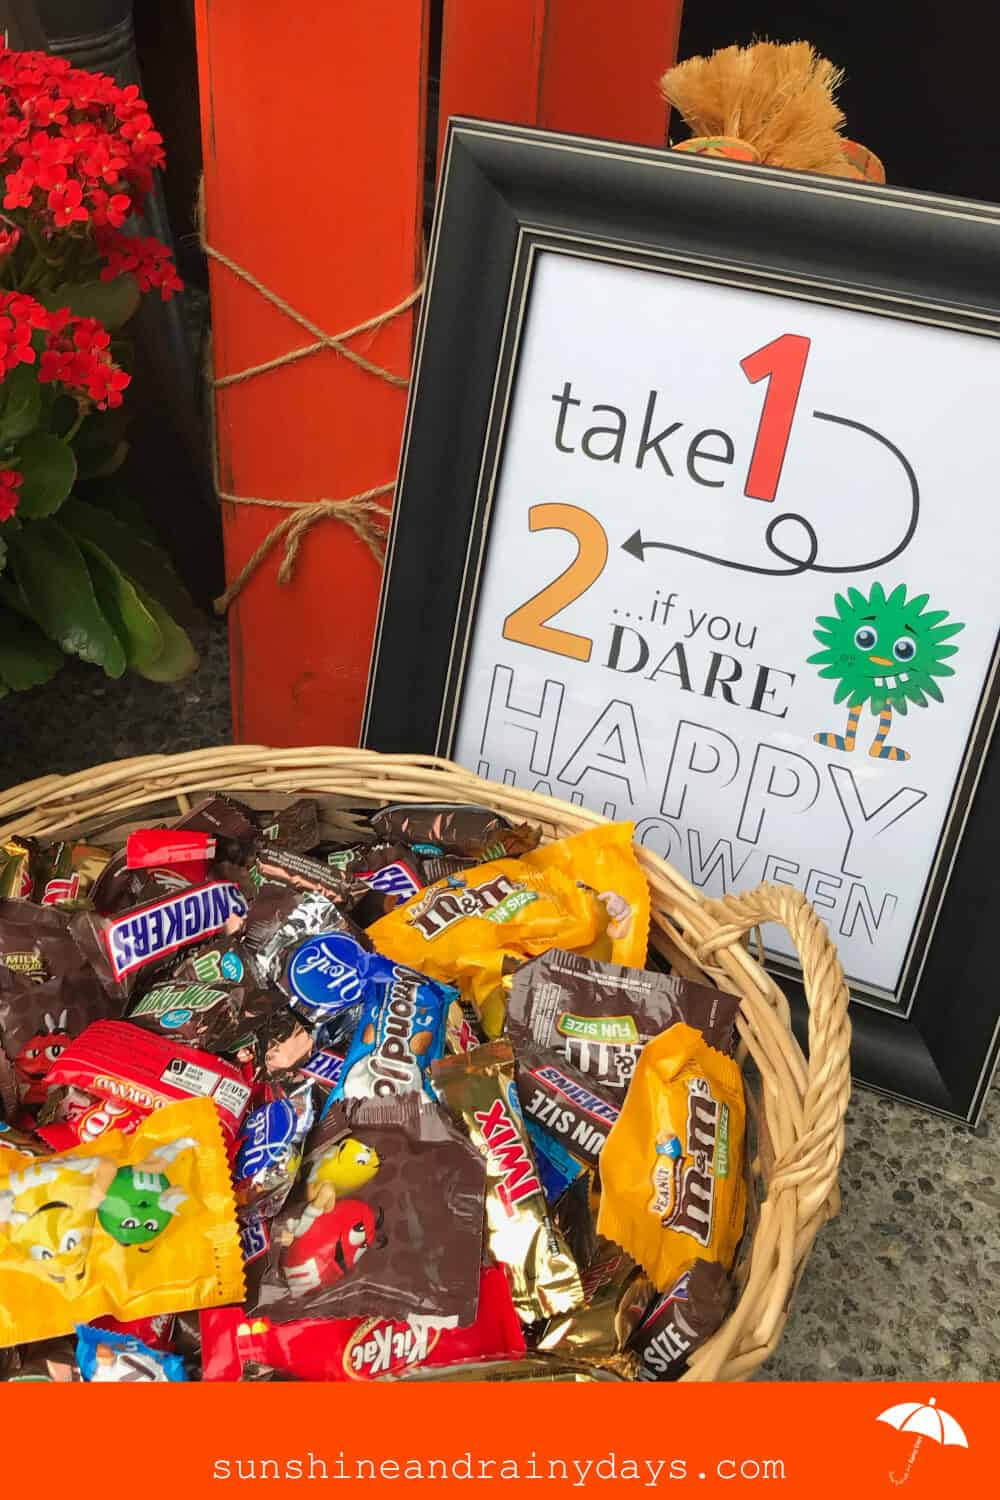 Take 1, ... 2 if you DARE! Trick Or Treat Sign